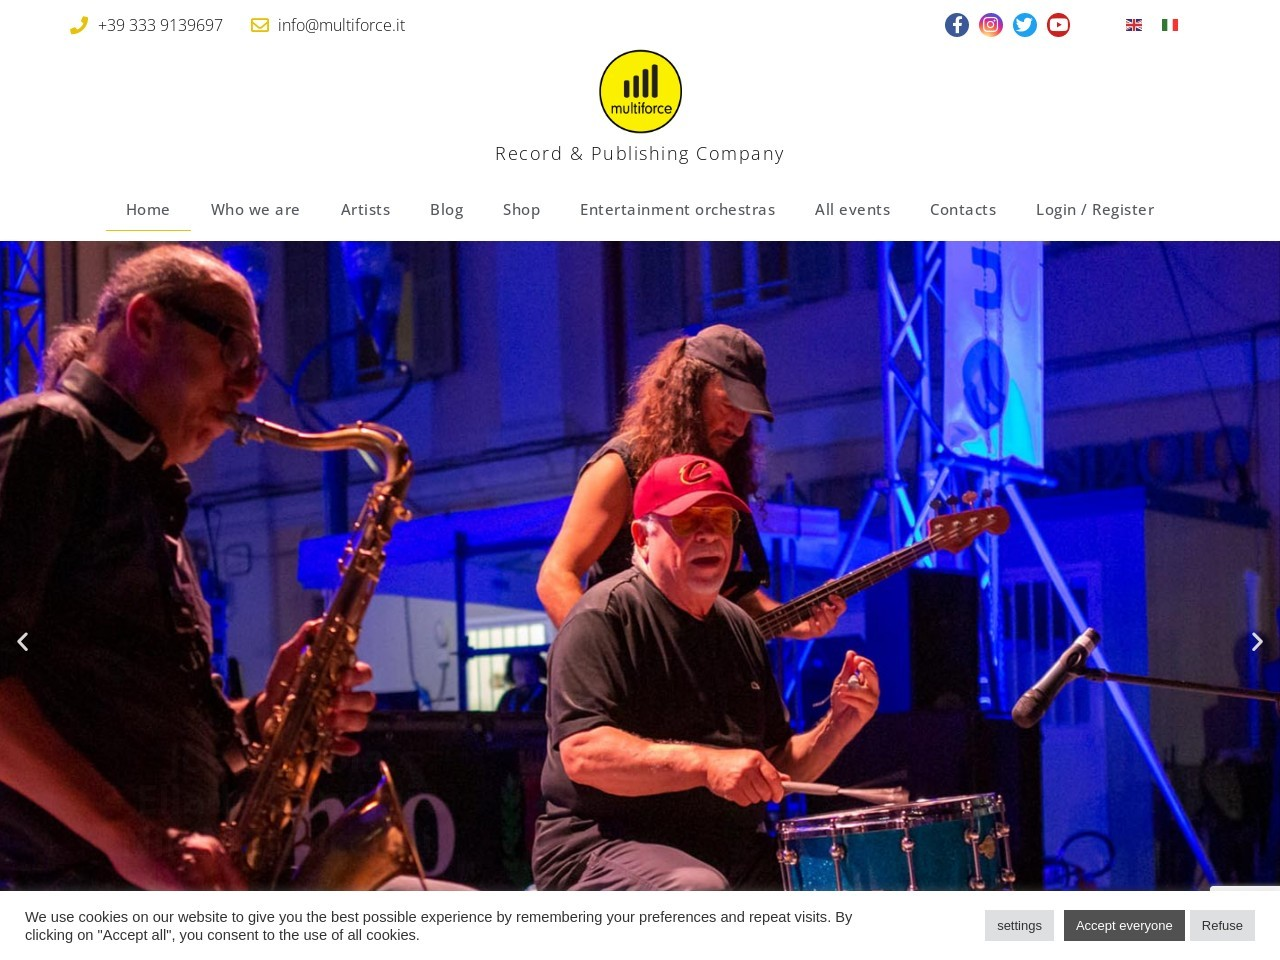 http://www.multiforce.it